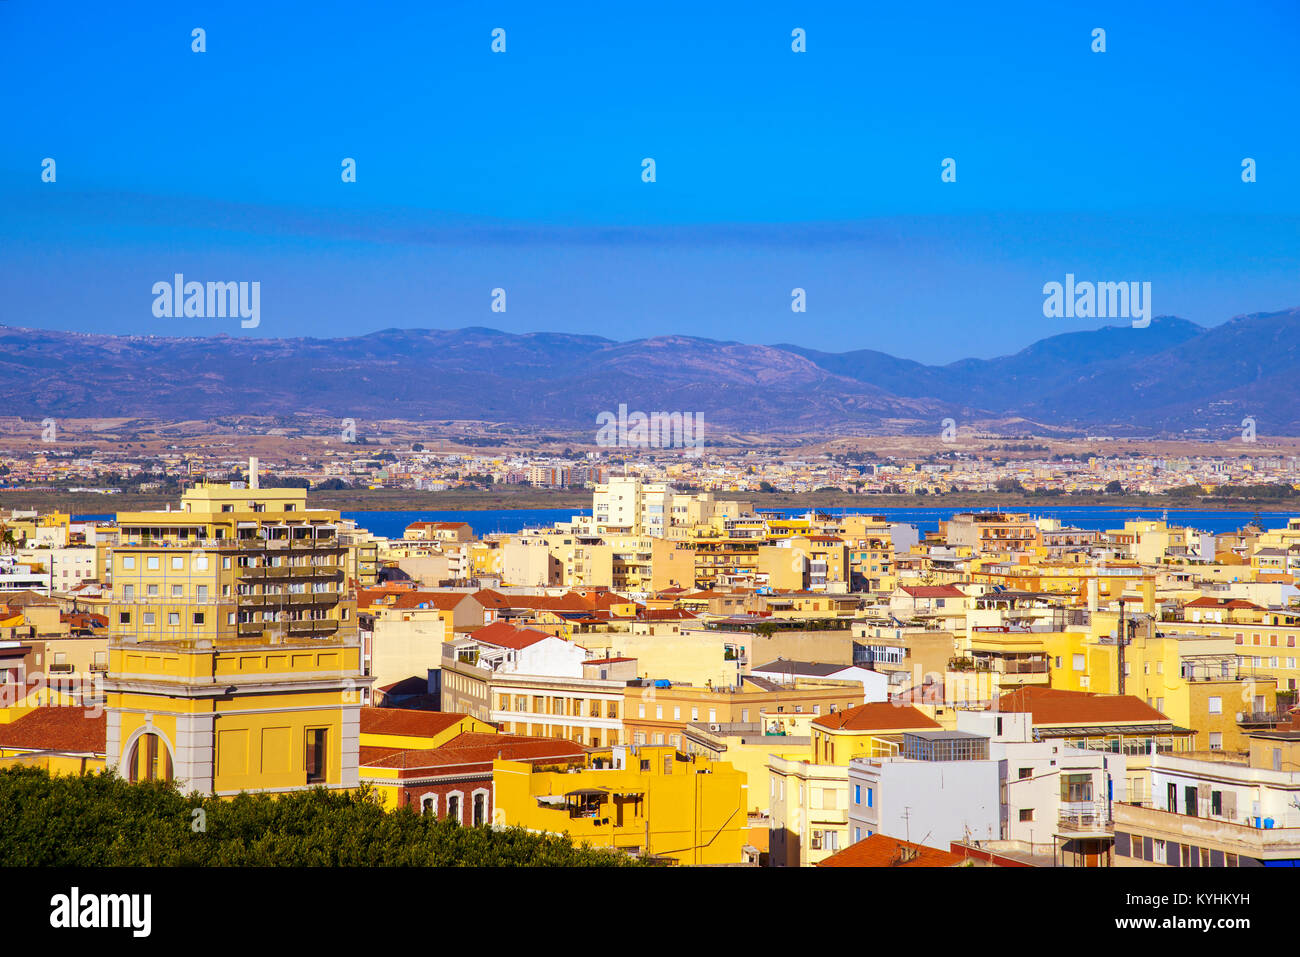 an aerial view of Cagliari, in Sardinia, Italy, with the Montelargius lake and Quartu Sant Elena in the background - Stock Image